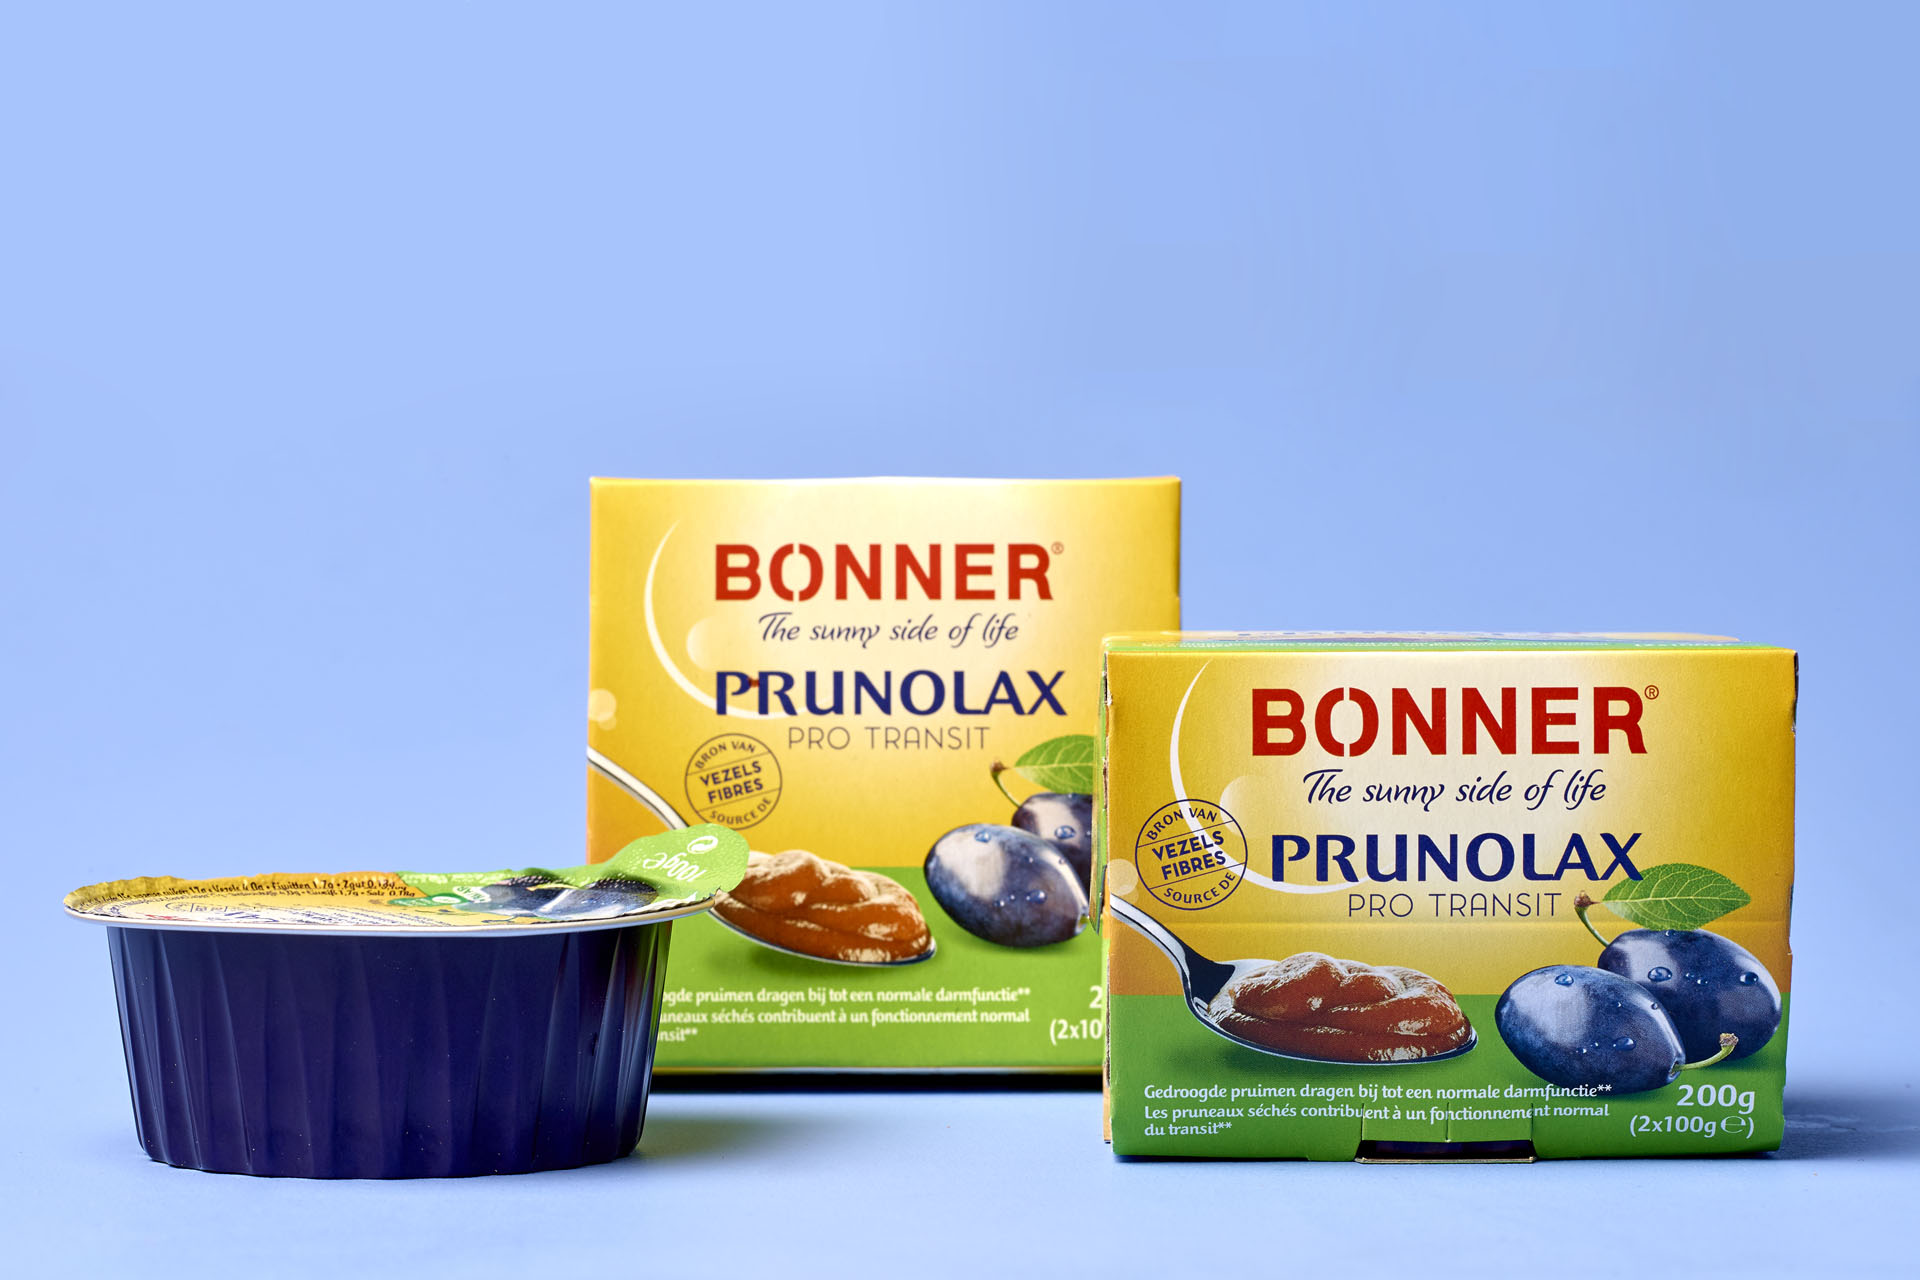 Bonner prunolax brand relift by DesignRepublic, branding and packaging design agency Belgium